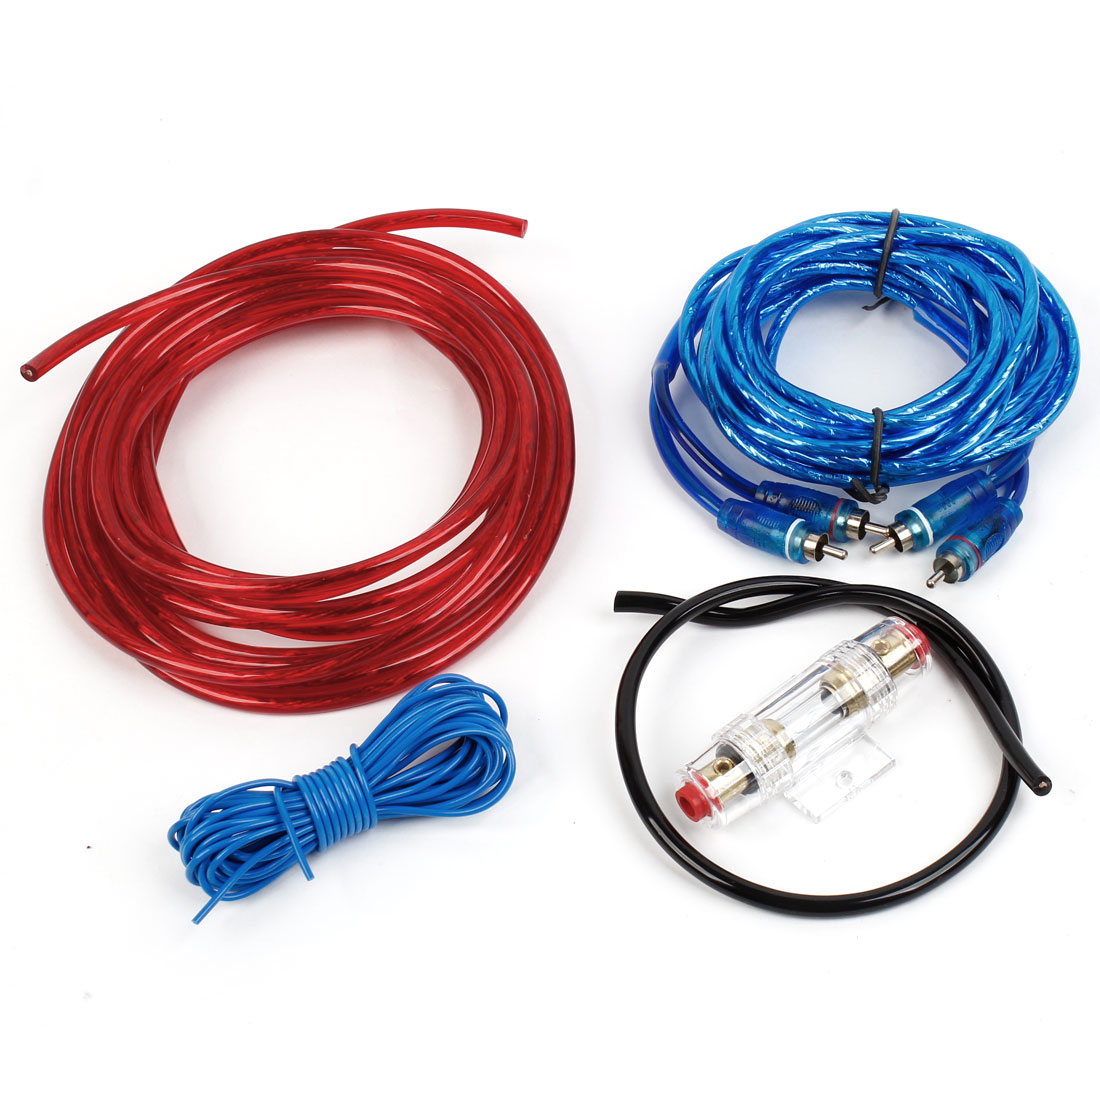 Unique Bargains Auto Car Spare Parts Audio Power Amplifier Cable Wiring Kit Set